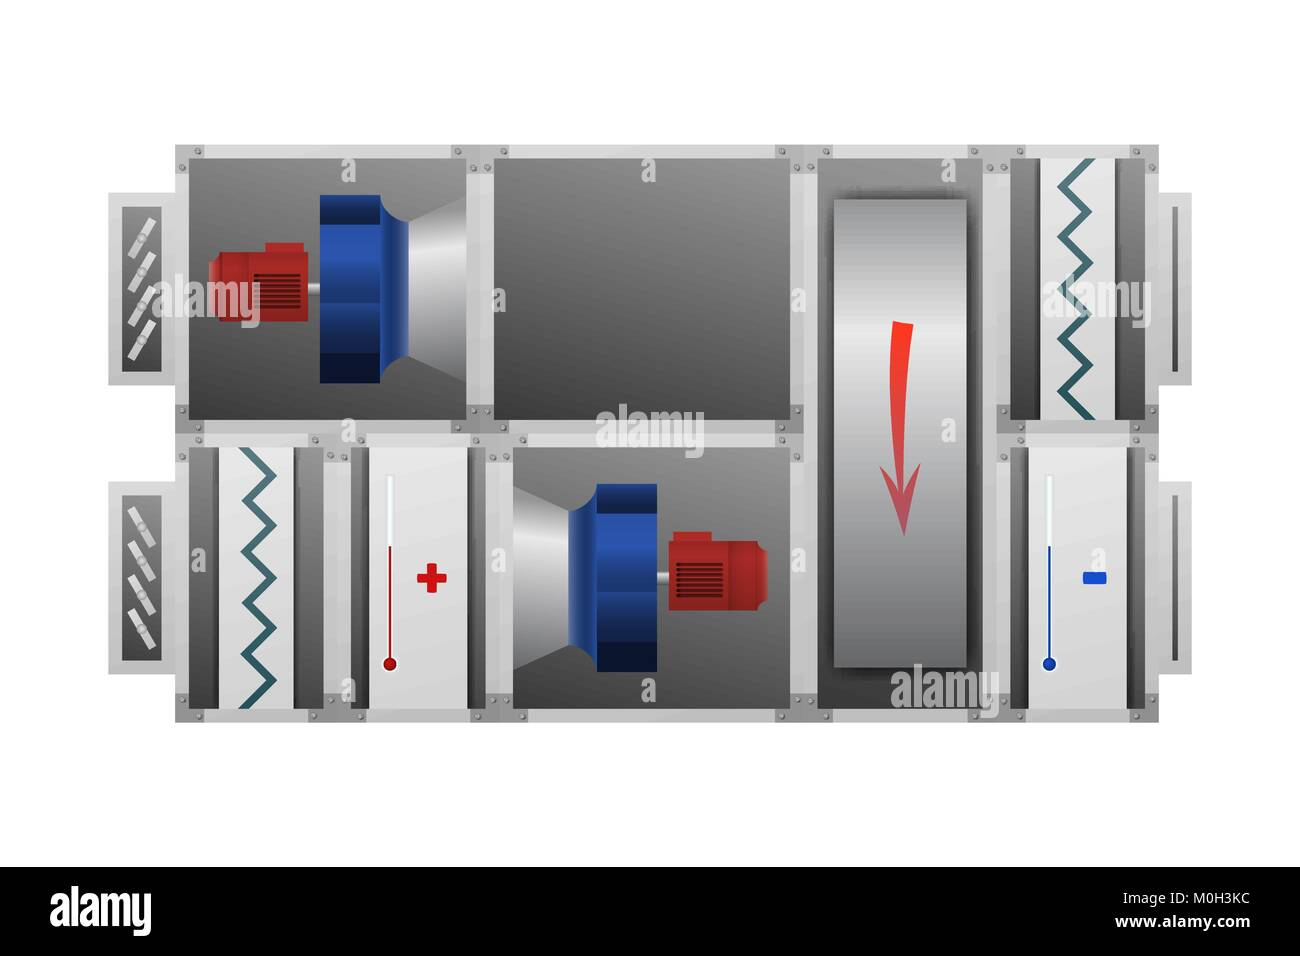 Air handling unit with Thermal Wheel. - Stock Vector